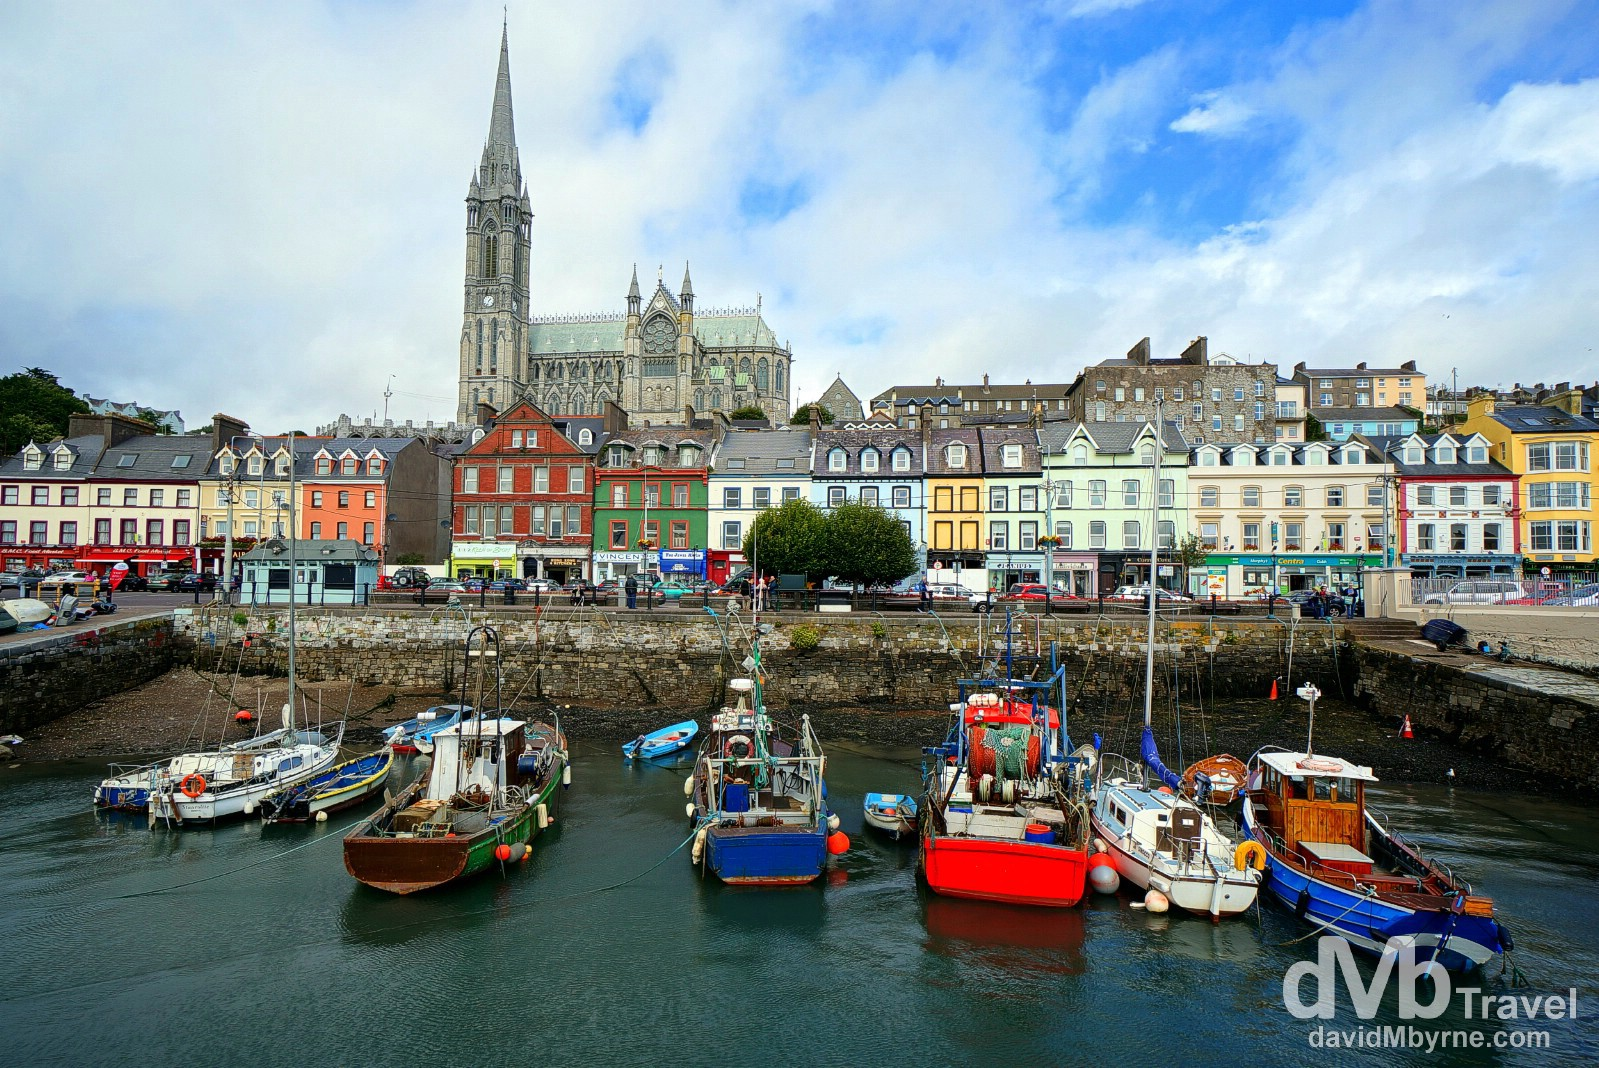 A sheltered section of Cobh Harbour, Co. Cork, Ireland. August 29, 2014.